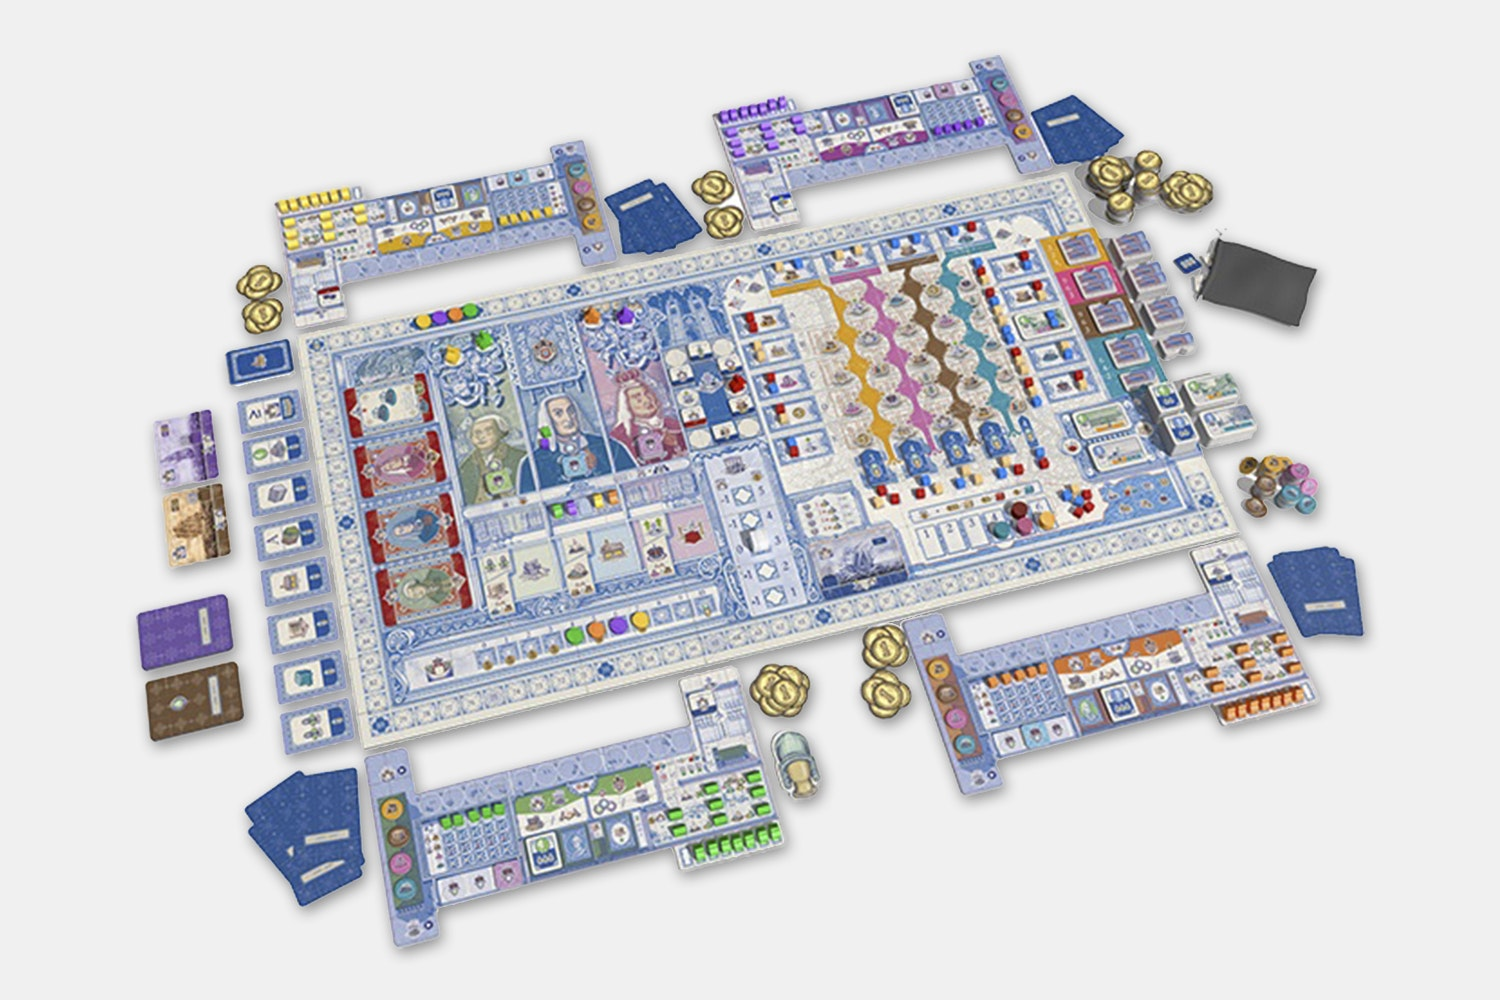 Lisboa Board Game by Vital Lacerda